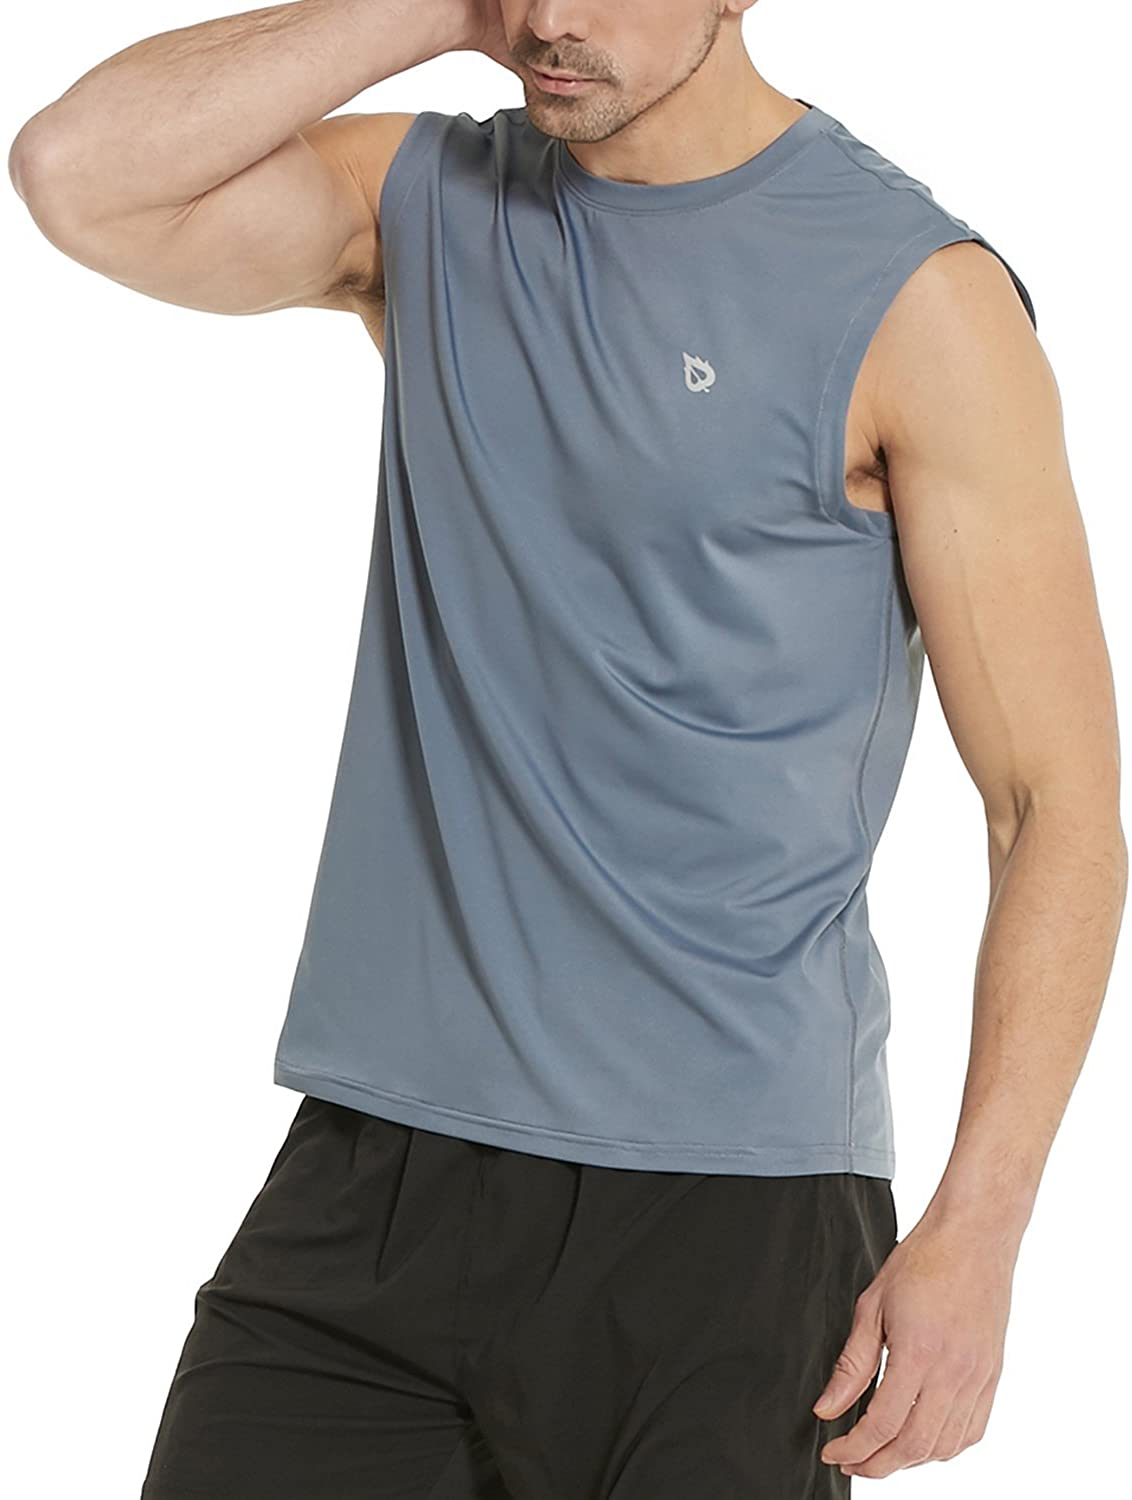 Classier: Buy BALEAF BALEAF Men's Sleeveless Tank Top Quick Dry Muscle t Shirts Gym Workout Bodybuilding Running Tech Tops